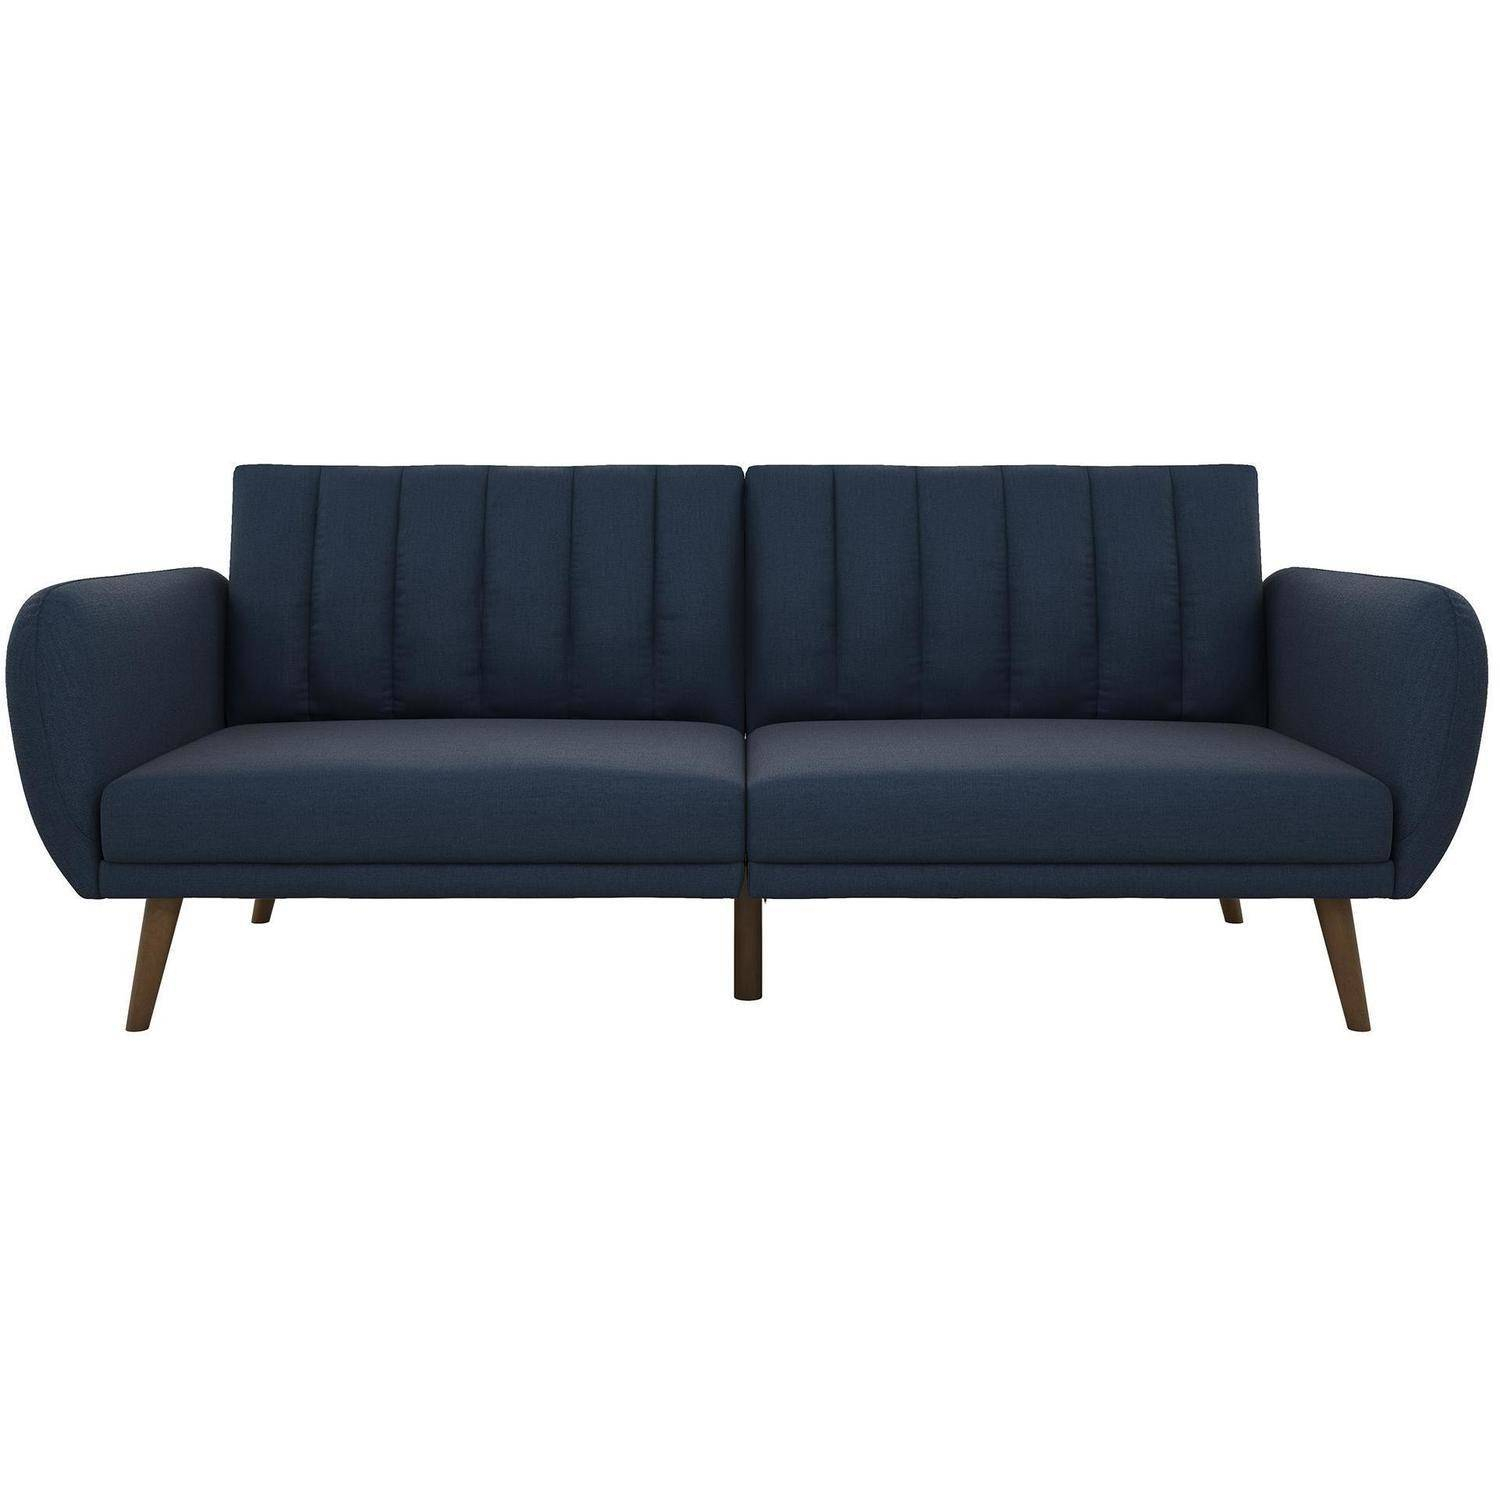 Novogratz Brittany Linen Futon Couch, Multiple Colors Intended For Brittany Sectional Futon Sofas (View 5 of 15)